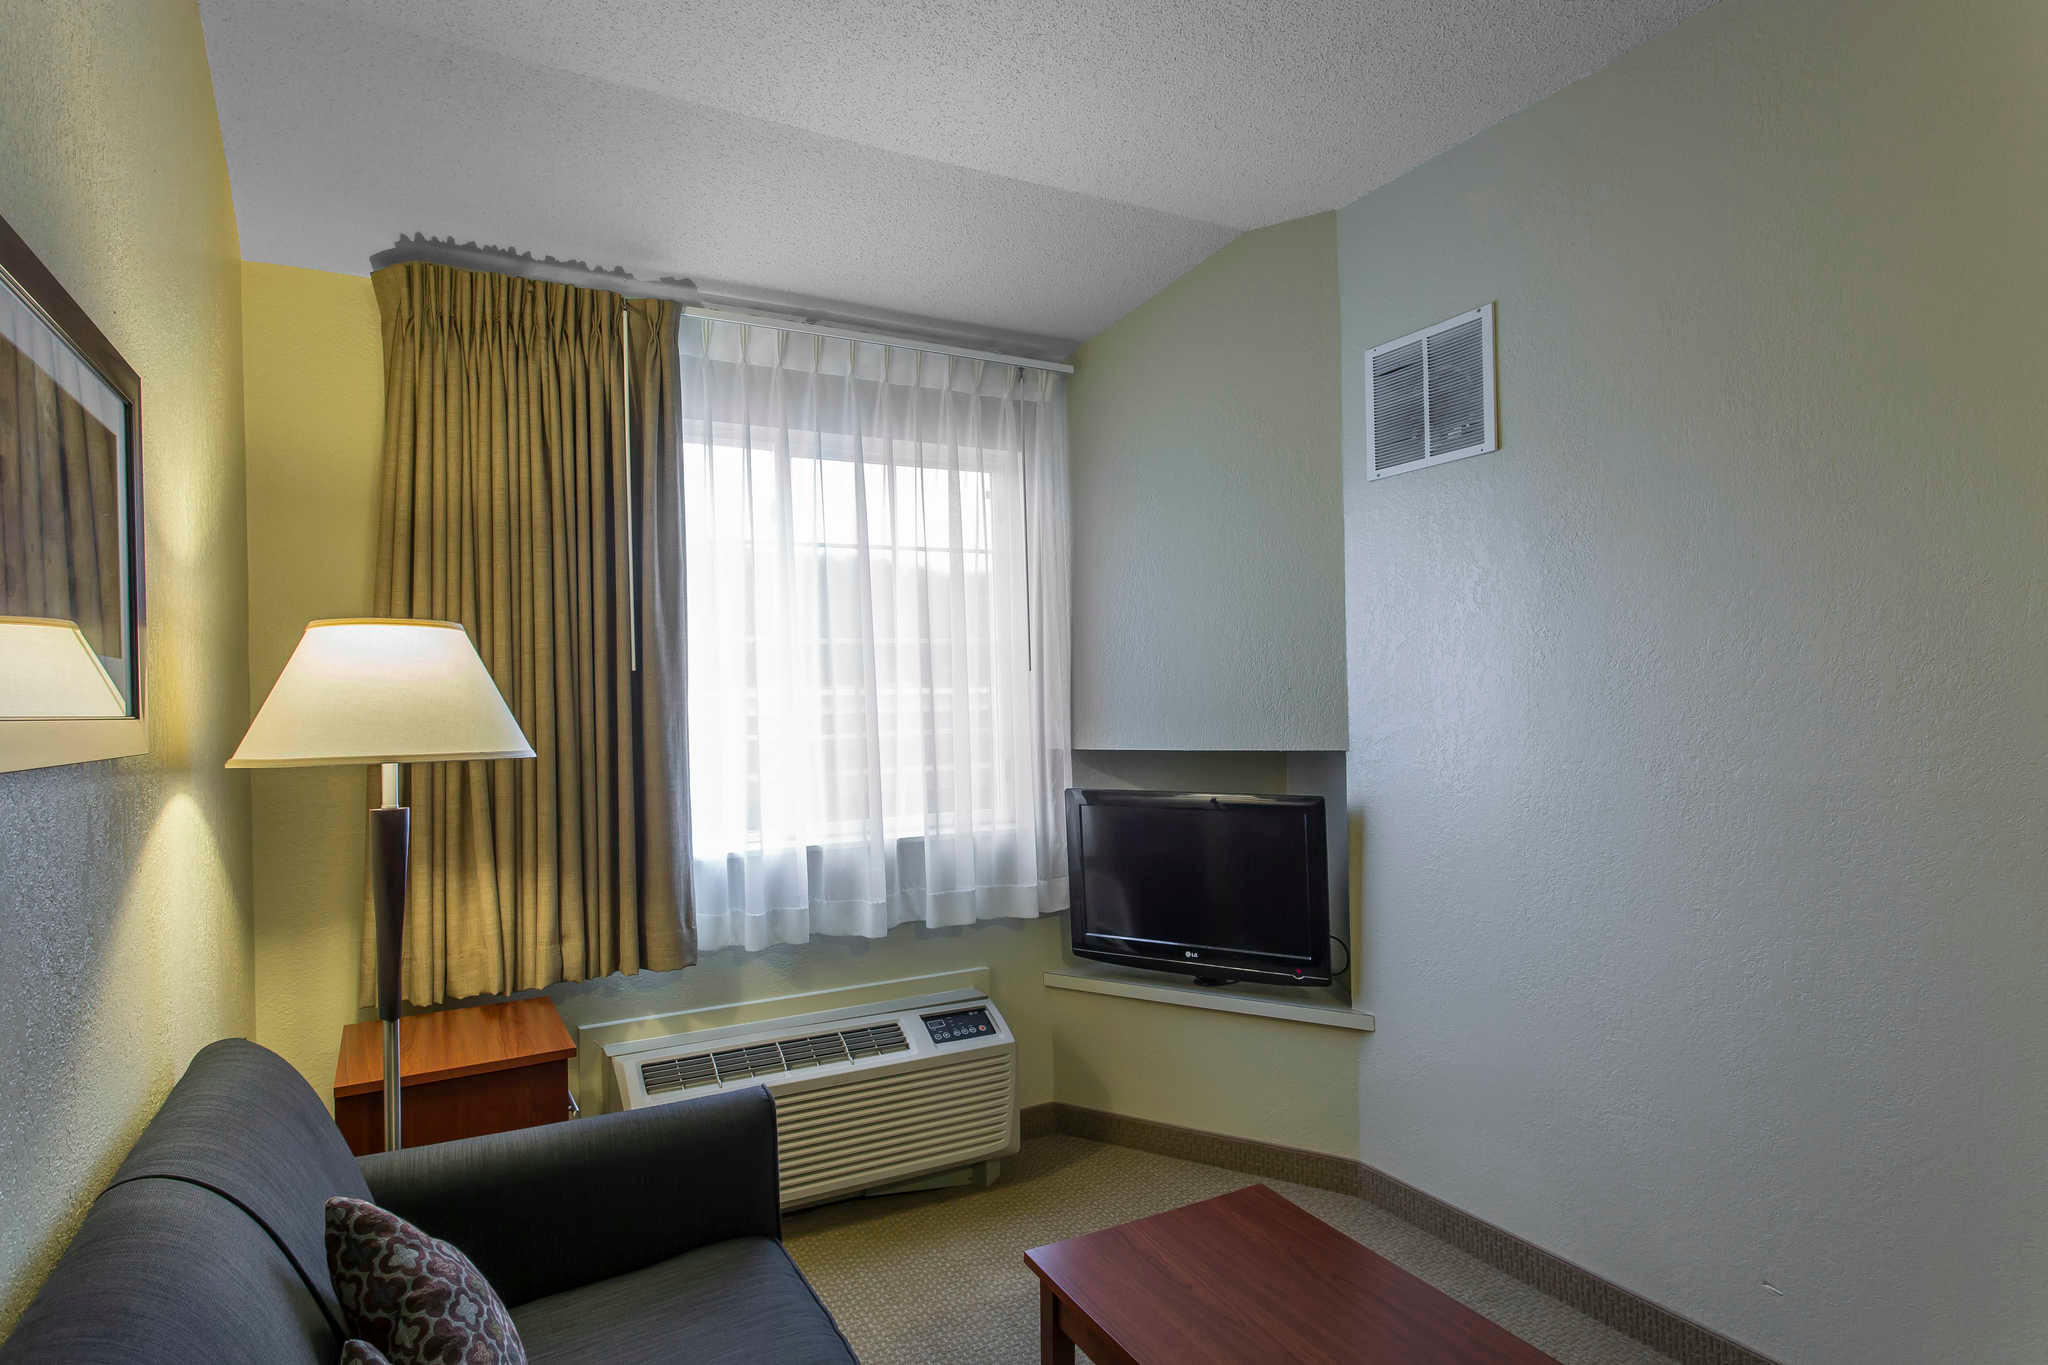 MainStay Suites image 36